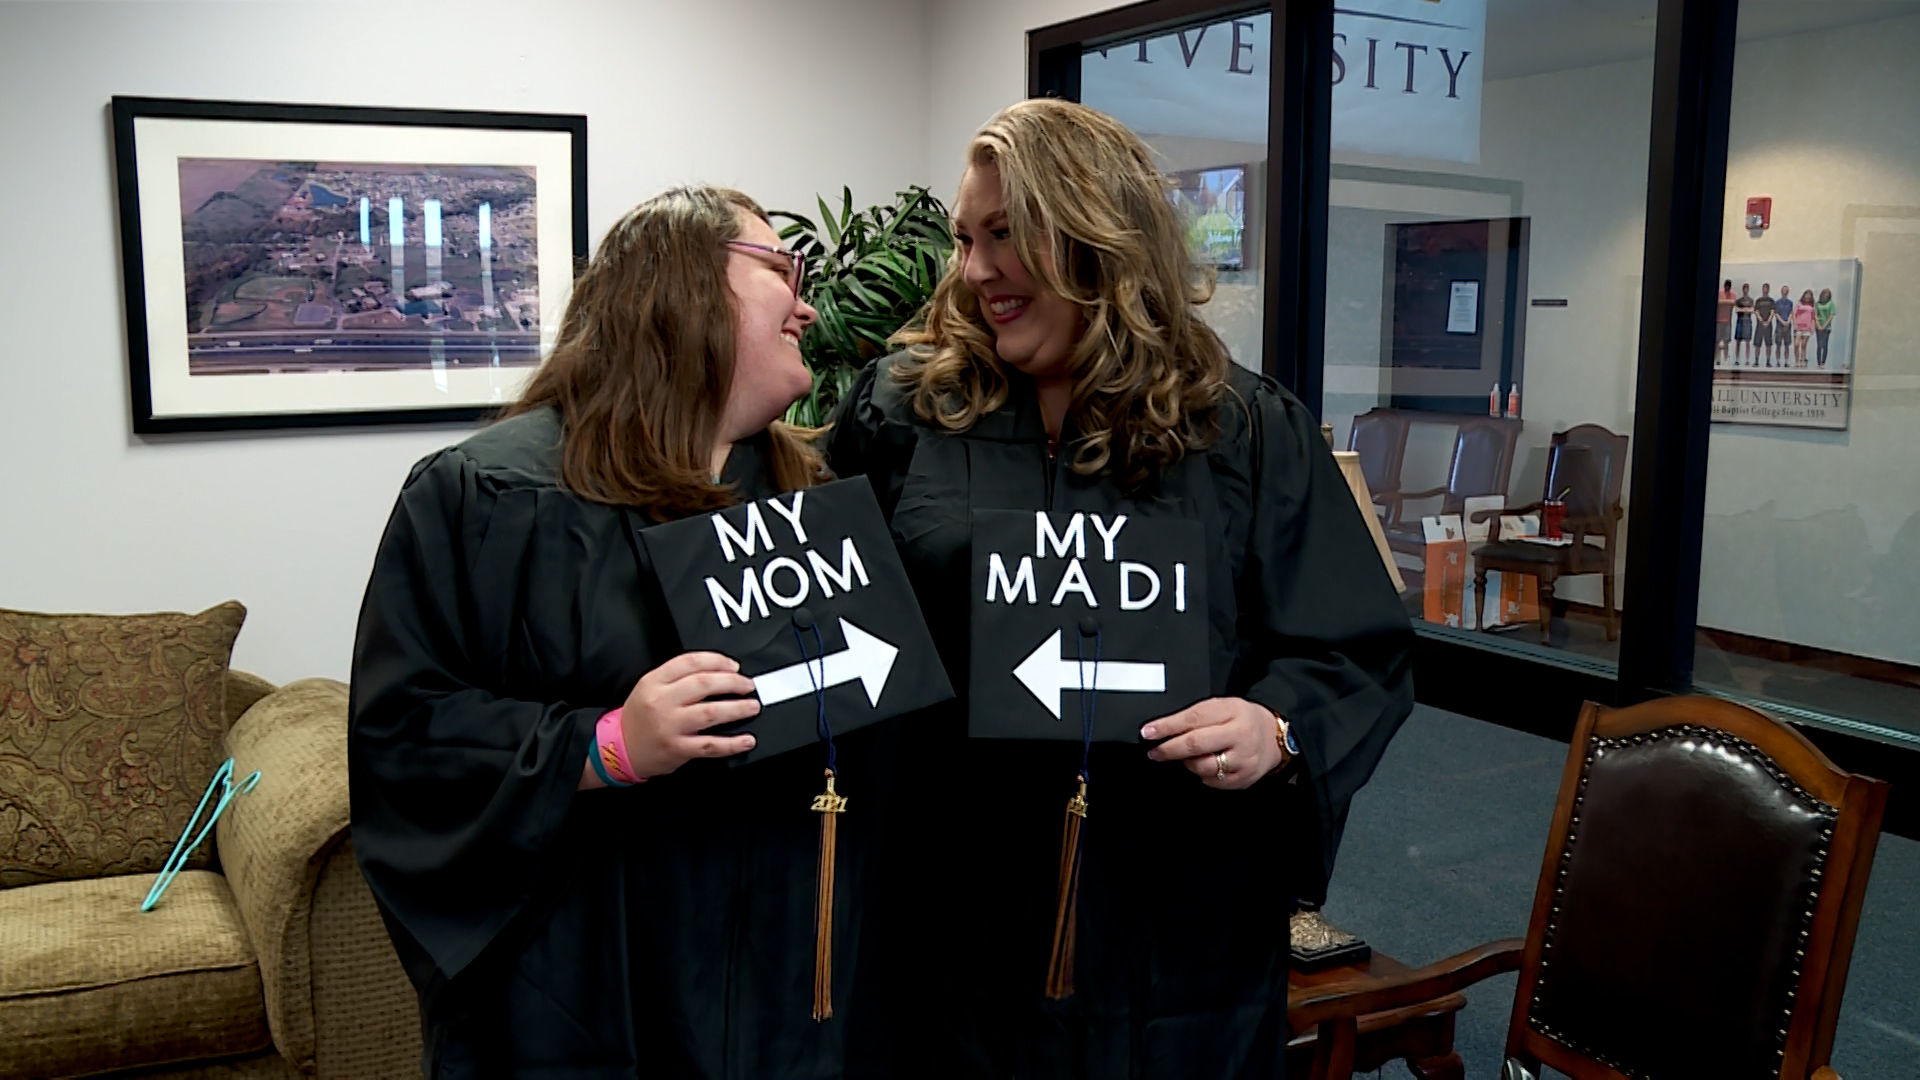 Madison and Audra Aldridge graduate together from Randall University in Moore, Oklahoma